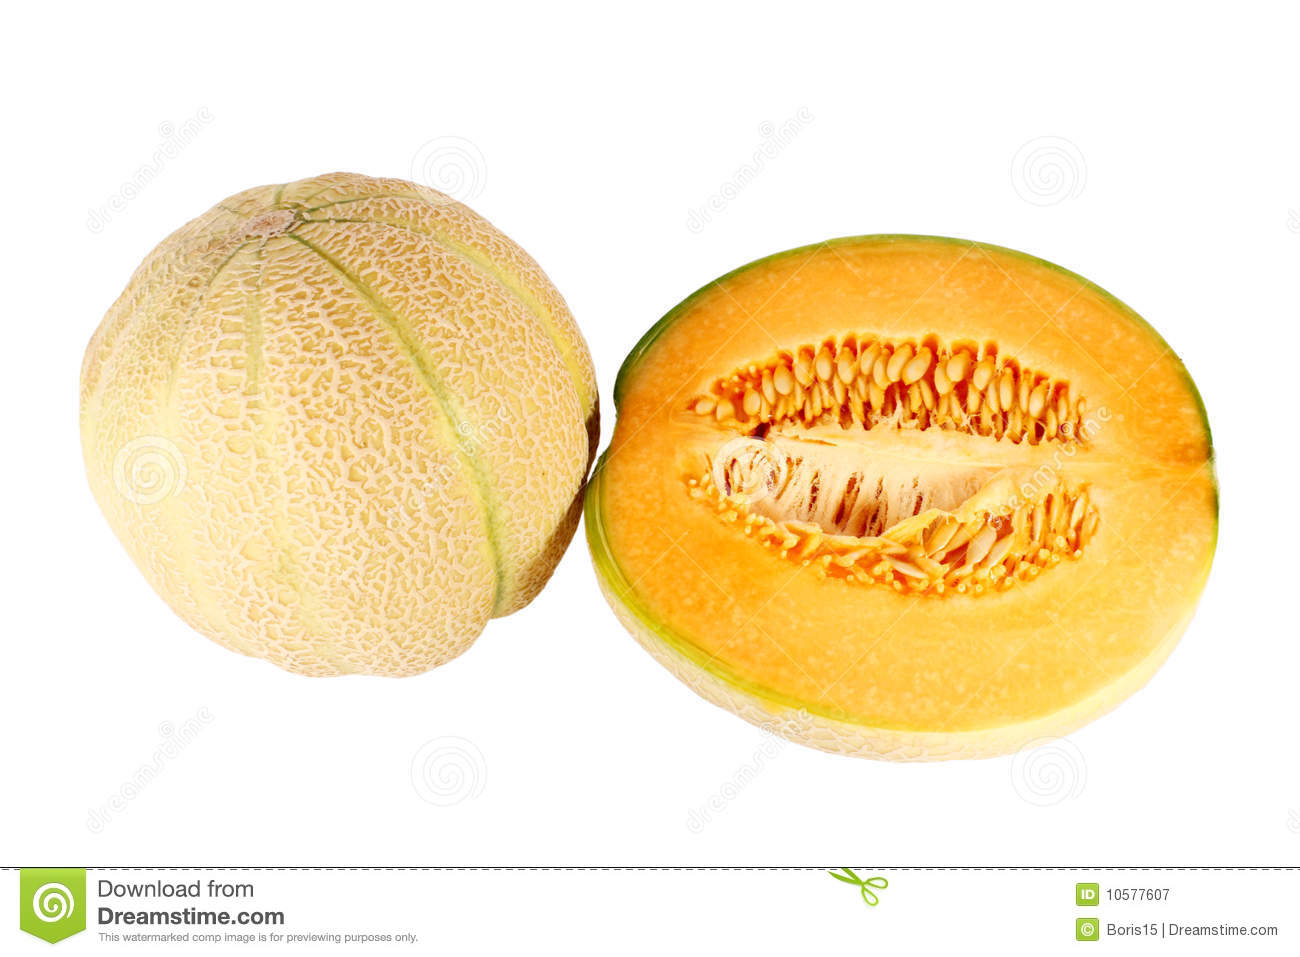 Sweet Baby Melon Stock Image Image Of Nature Refreshing 10577607 Grab incredible cantaloupe ball on alibaba.com at amazing offers and enjoy unending possibilities. dreamstime com